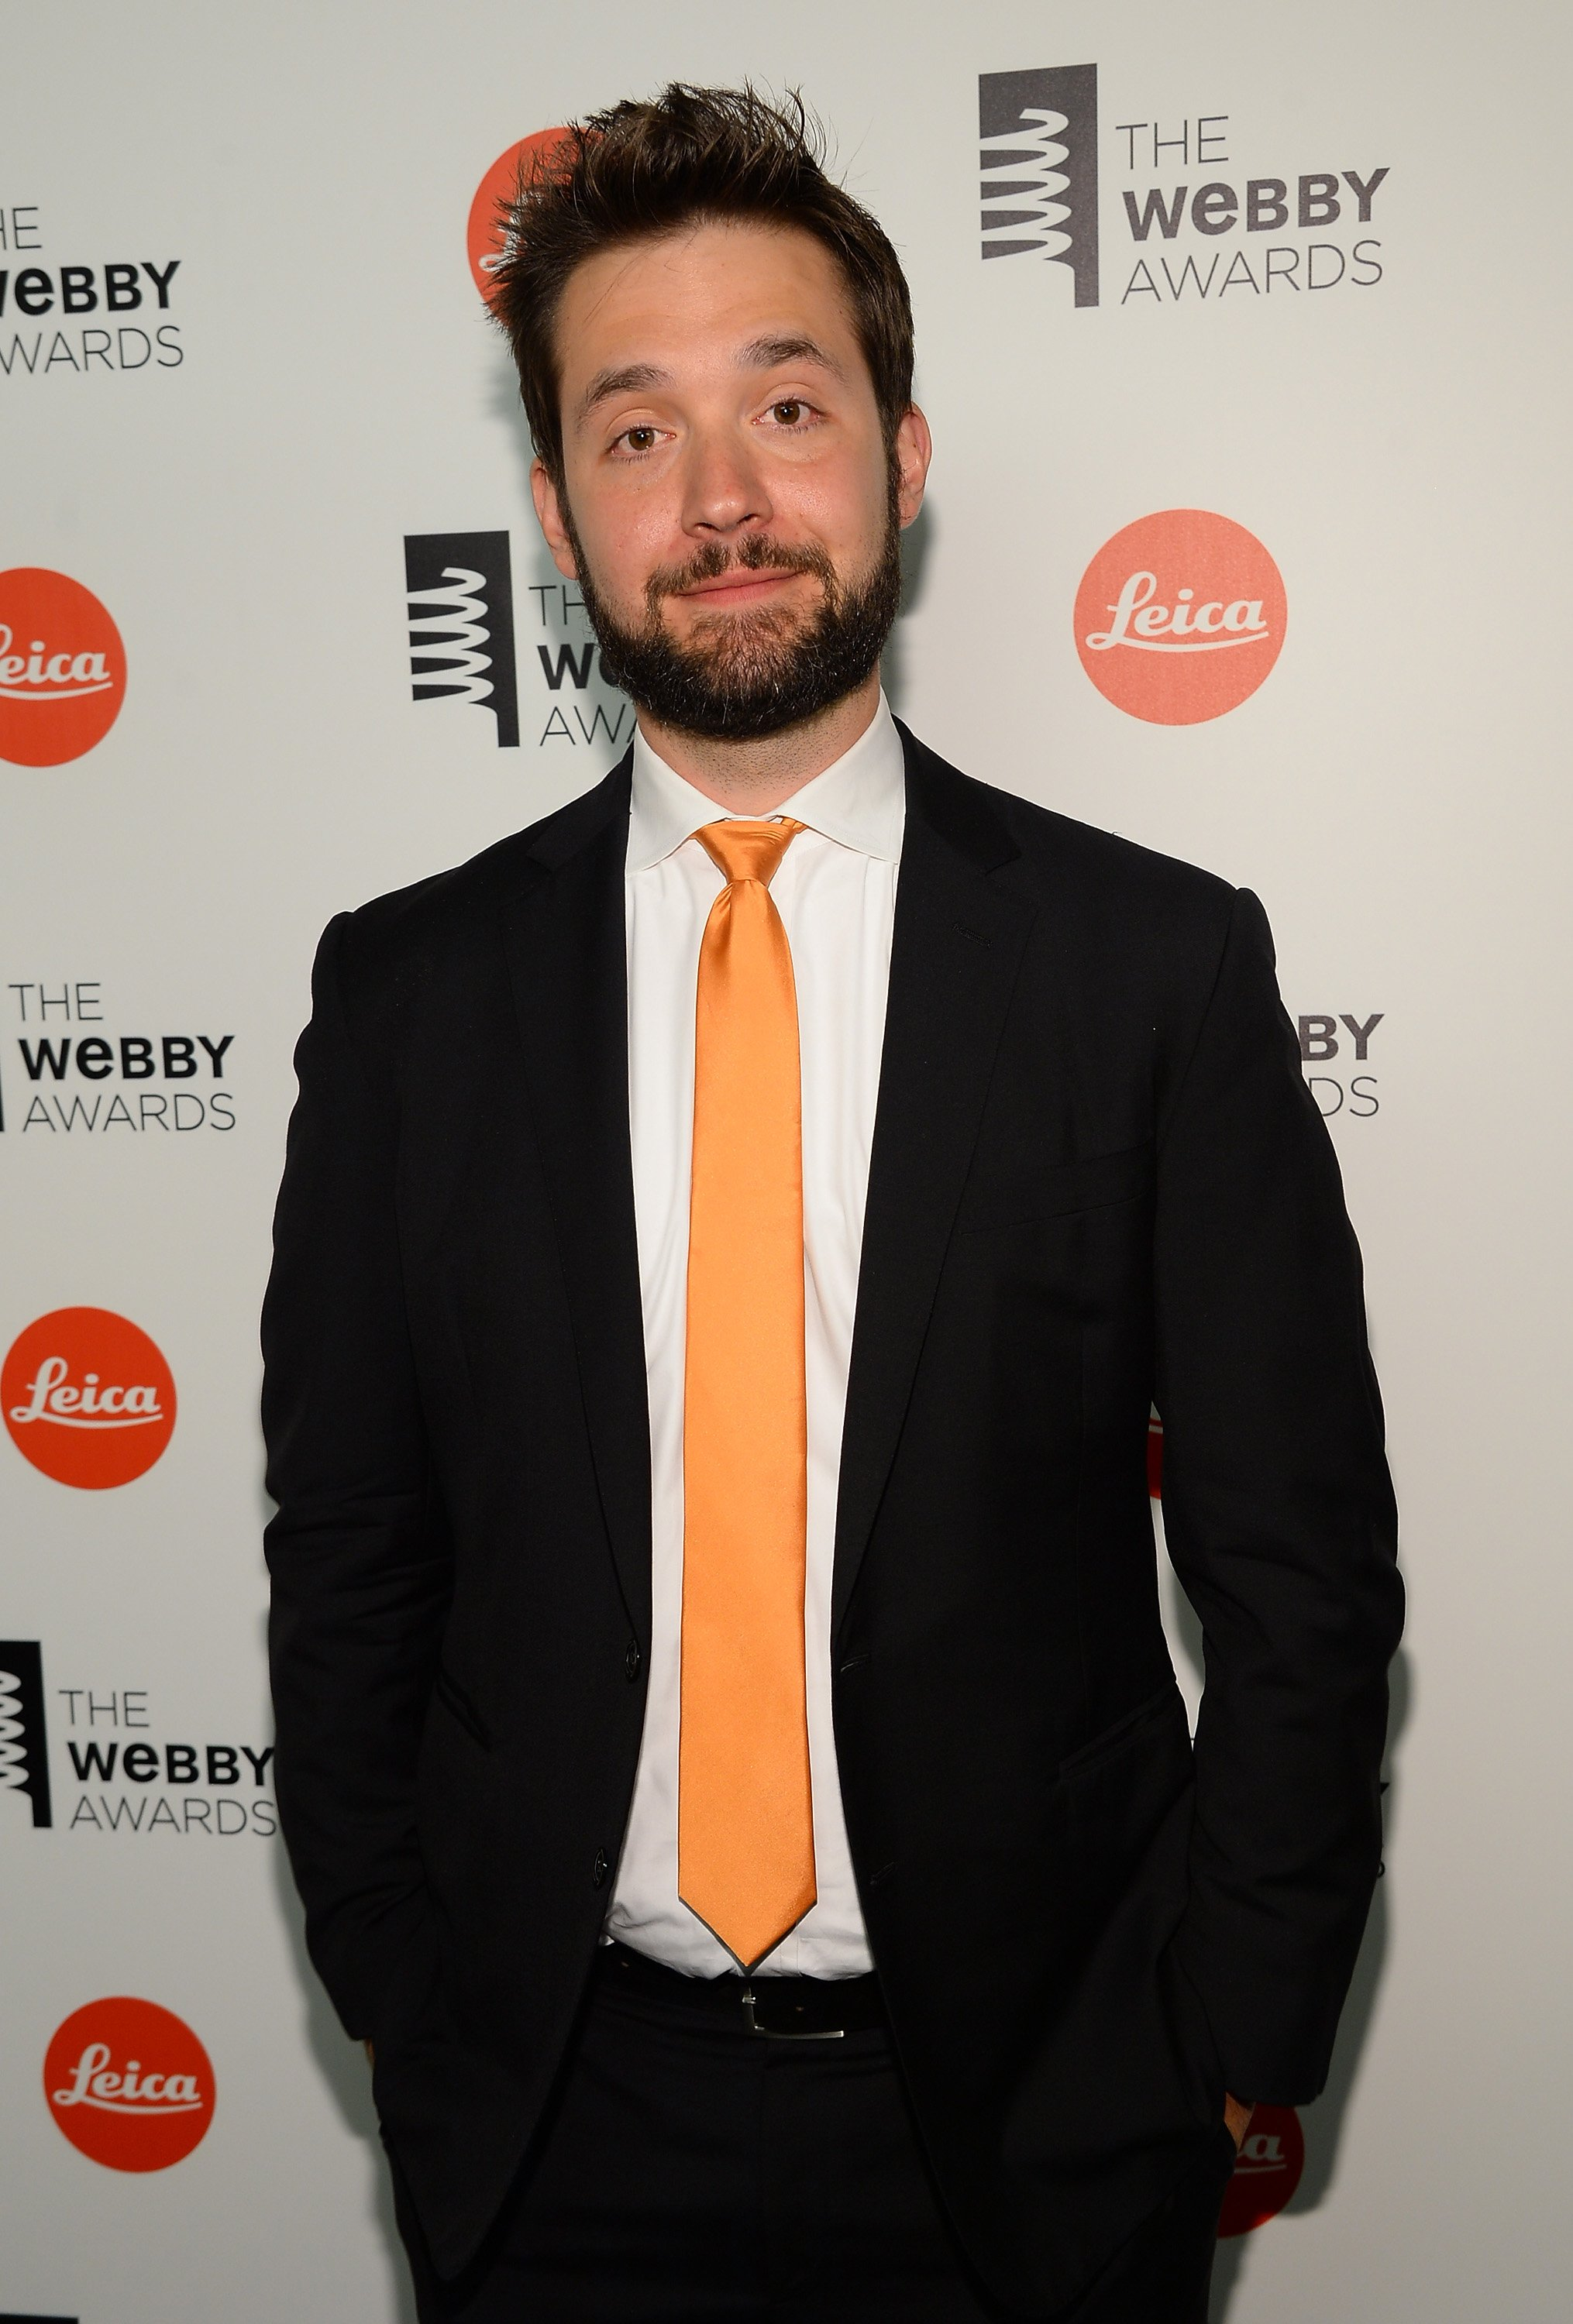 Alexis Ohanian poses backstage at the 18th Annual Webby Awards on May 19, 2014 | ¨Photo: GettyImages